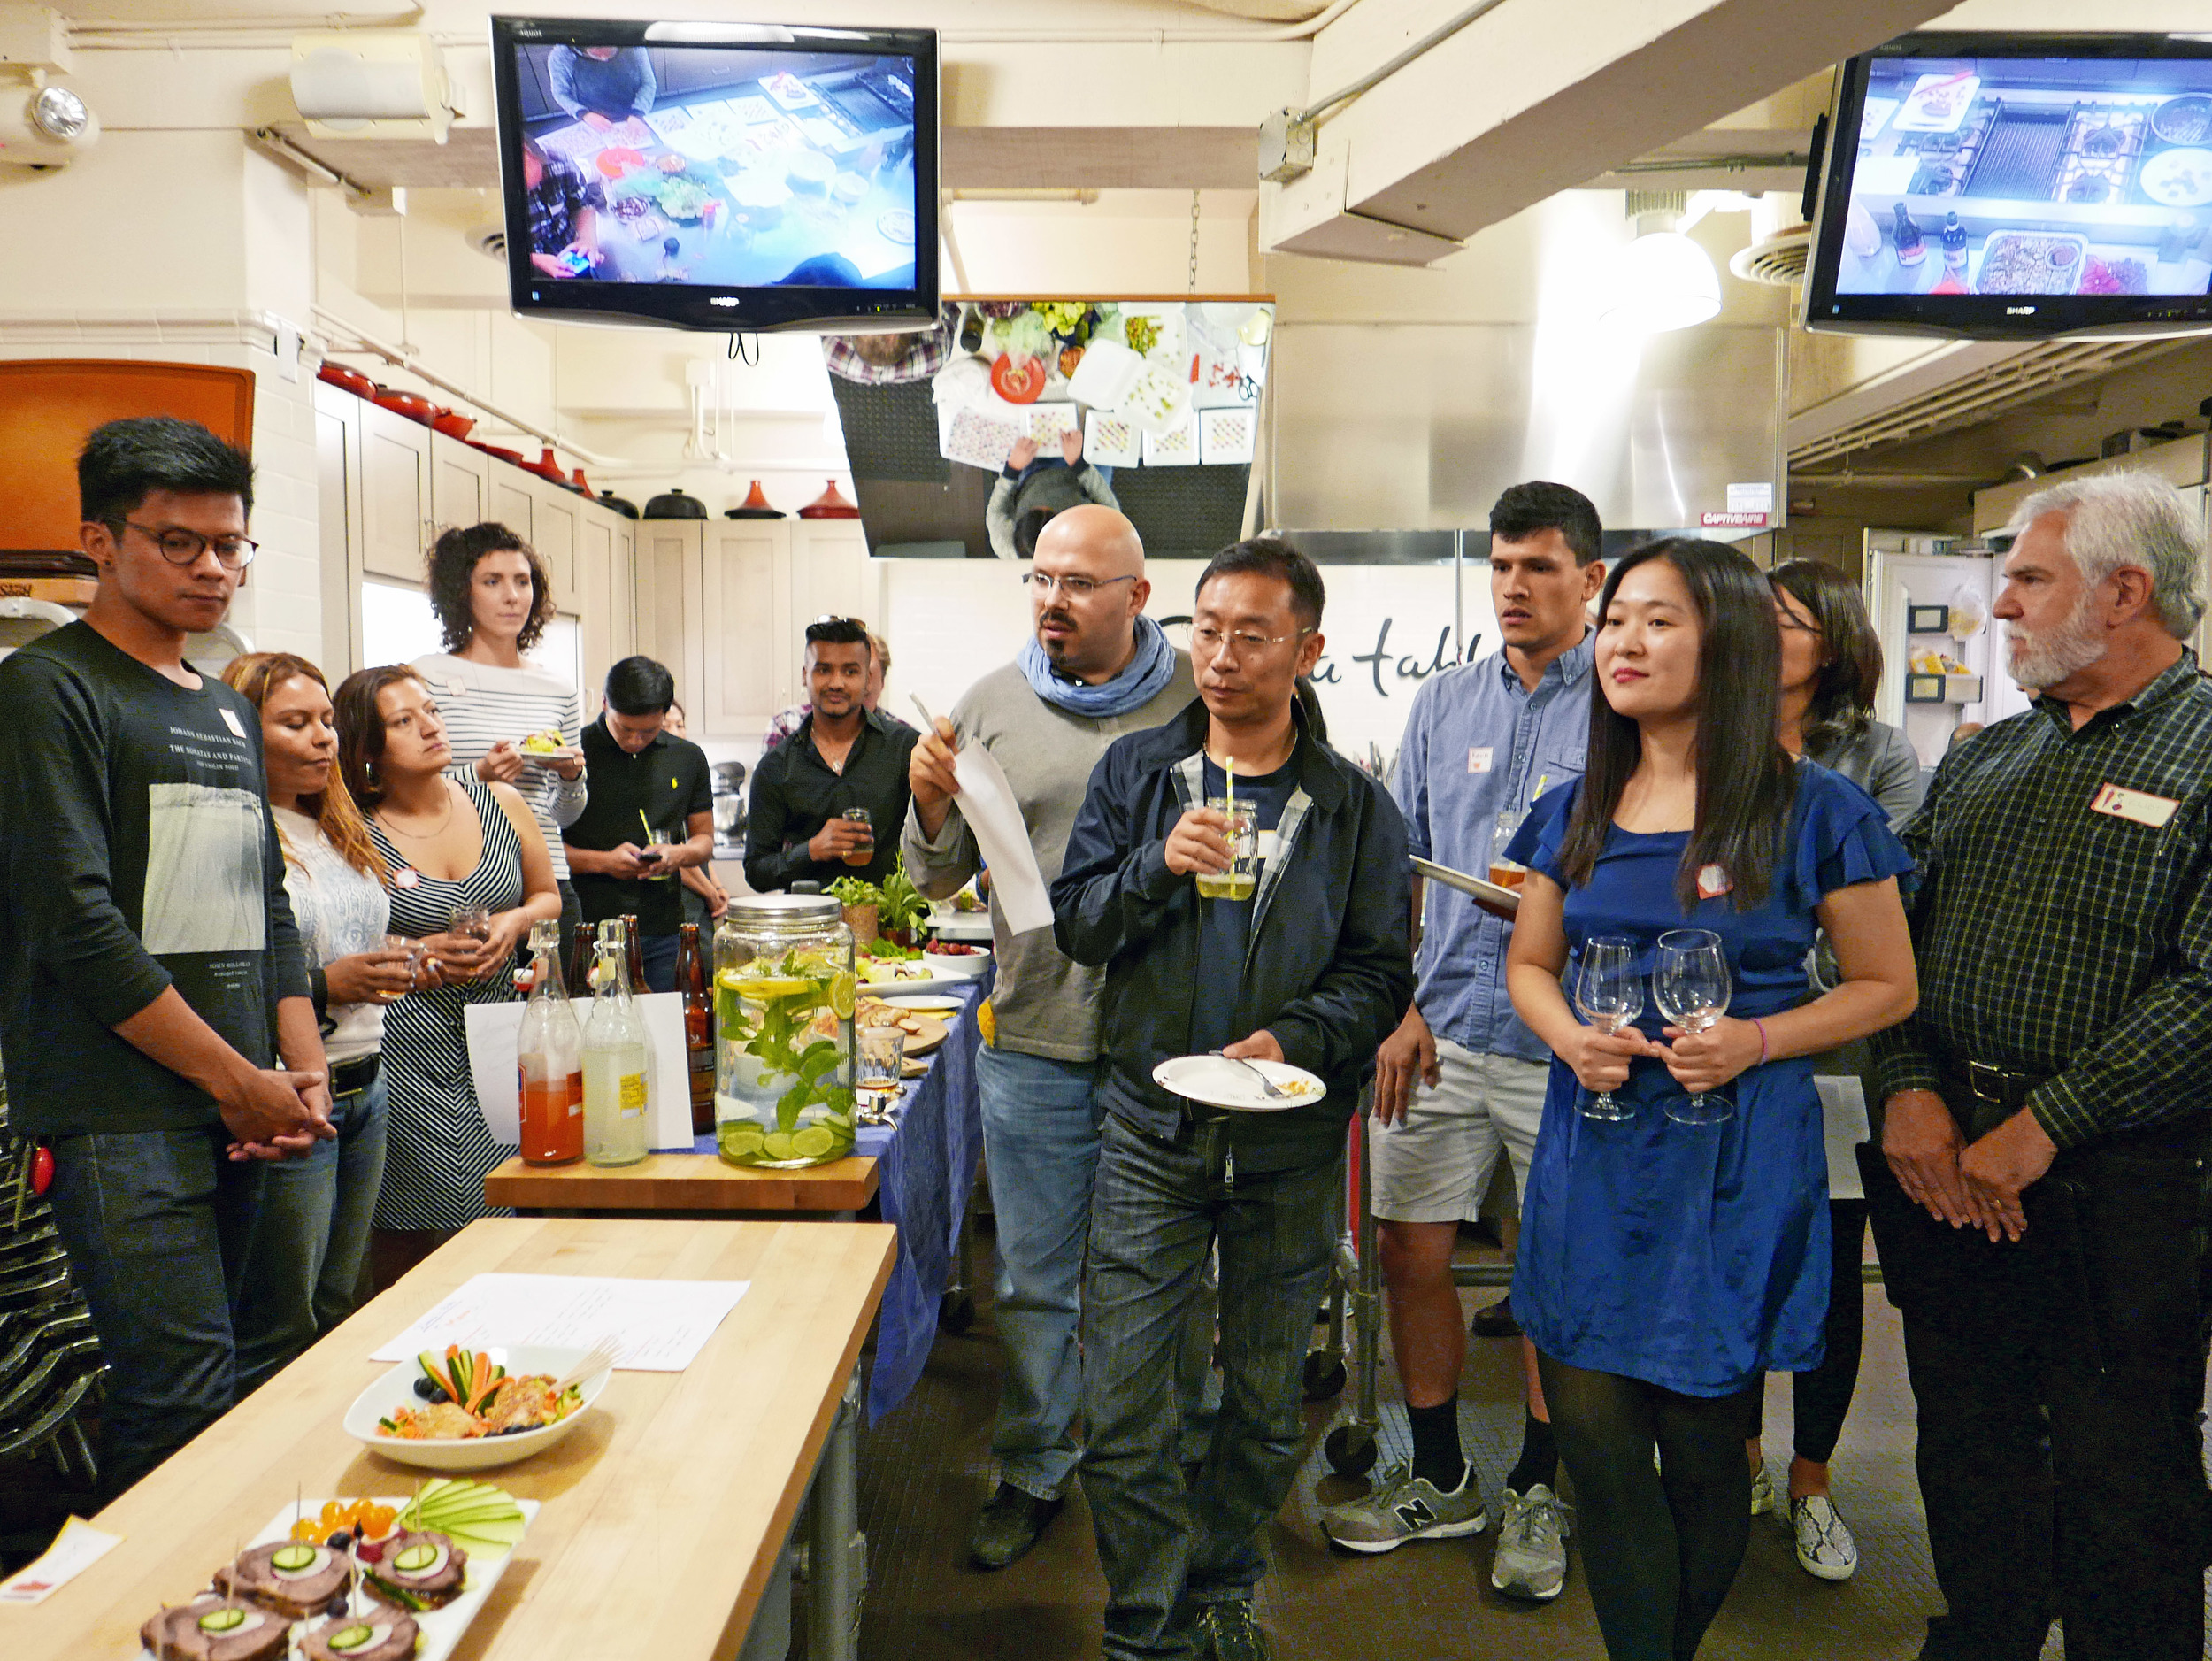 stanford-food-experience-design_18311957219_o.jpg